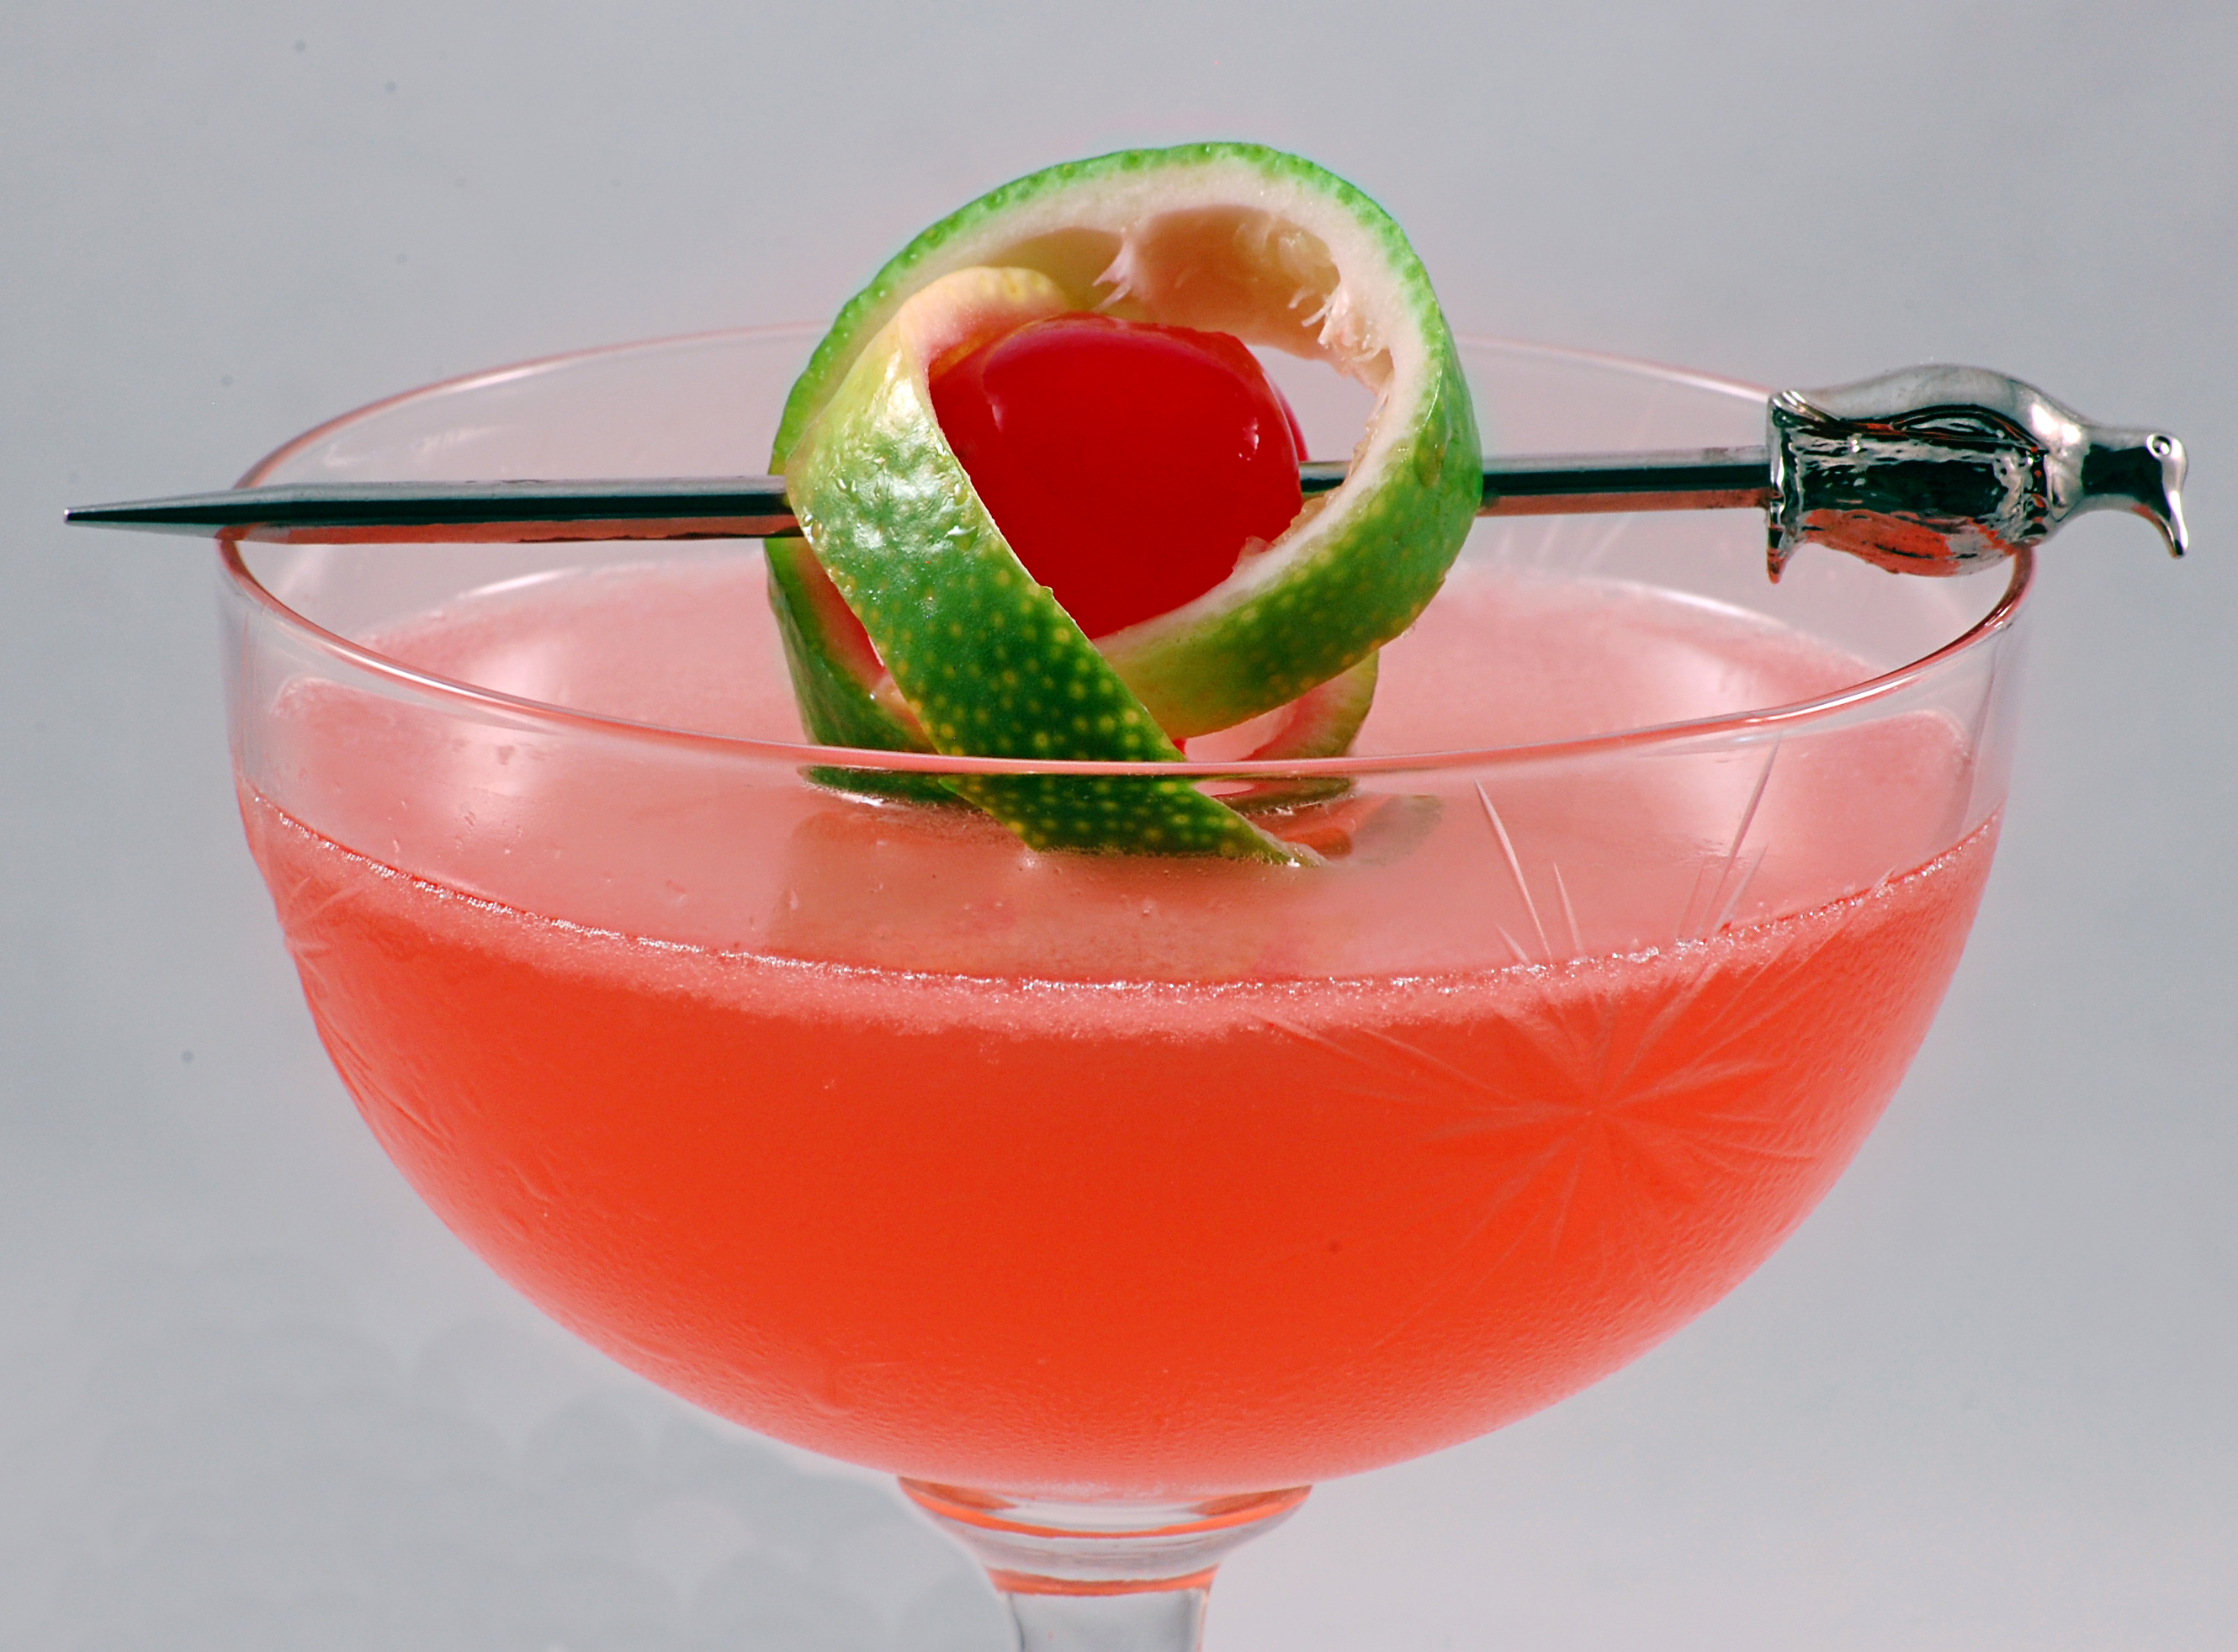 Pink_Lady_with_a_twist_of_lime,_in_a_cocktail_glass